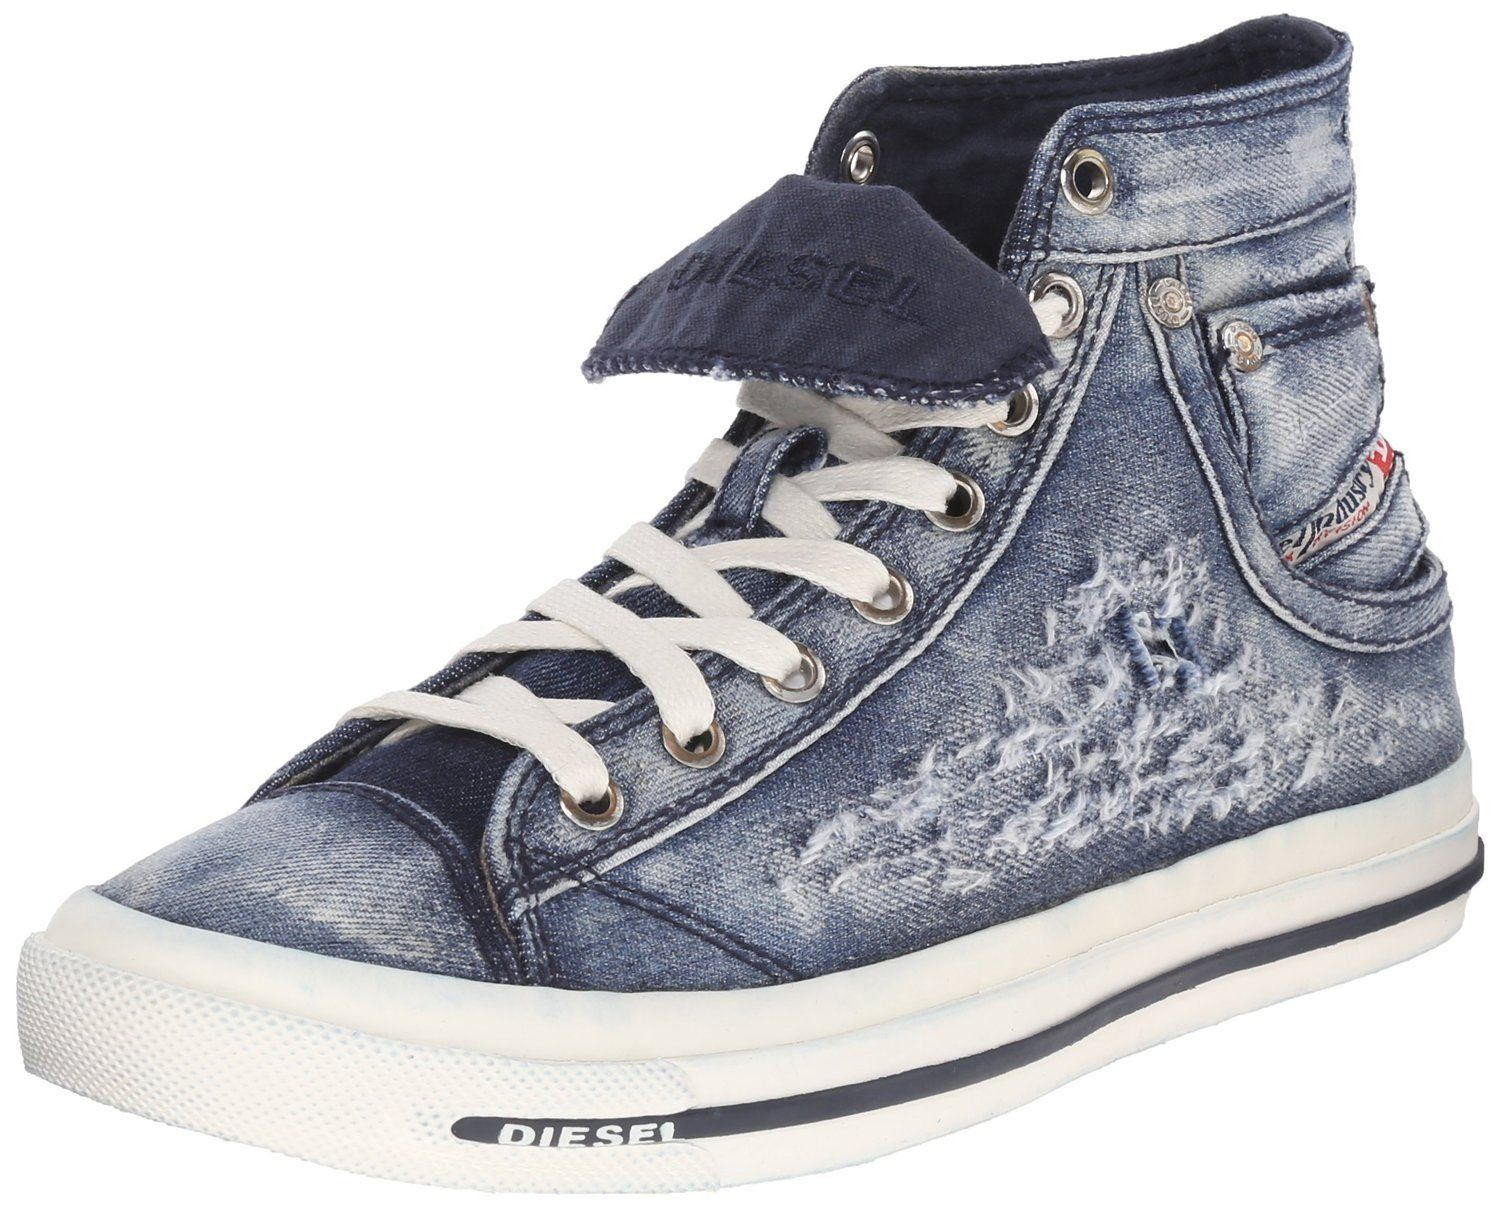 bccddc0844 Diesel Exposure IV W Indigo White Womens Canvas Trainers Boots-8. Awesome  retro inspired Hi Top sneaker from Diesel. Cool patterned denim fabric  upper with ...